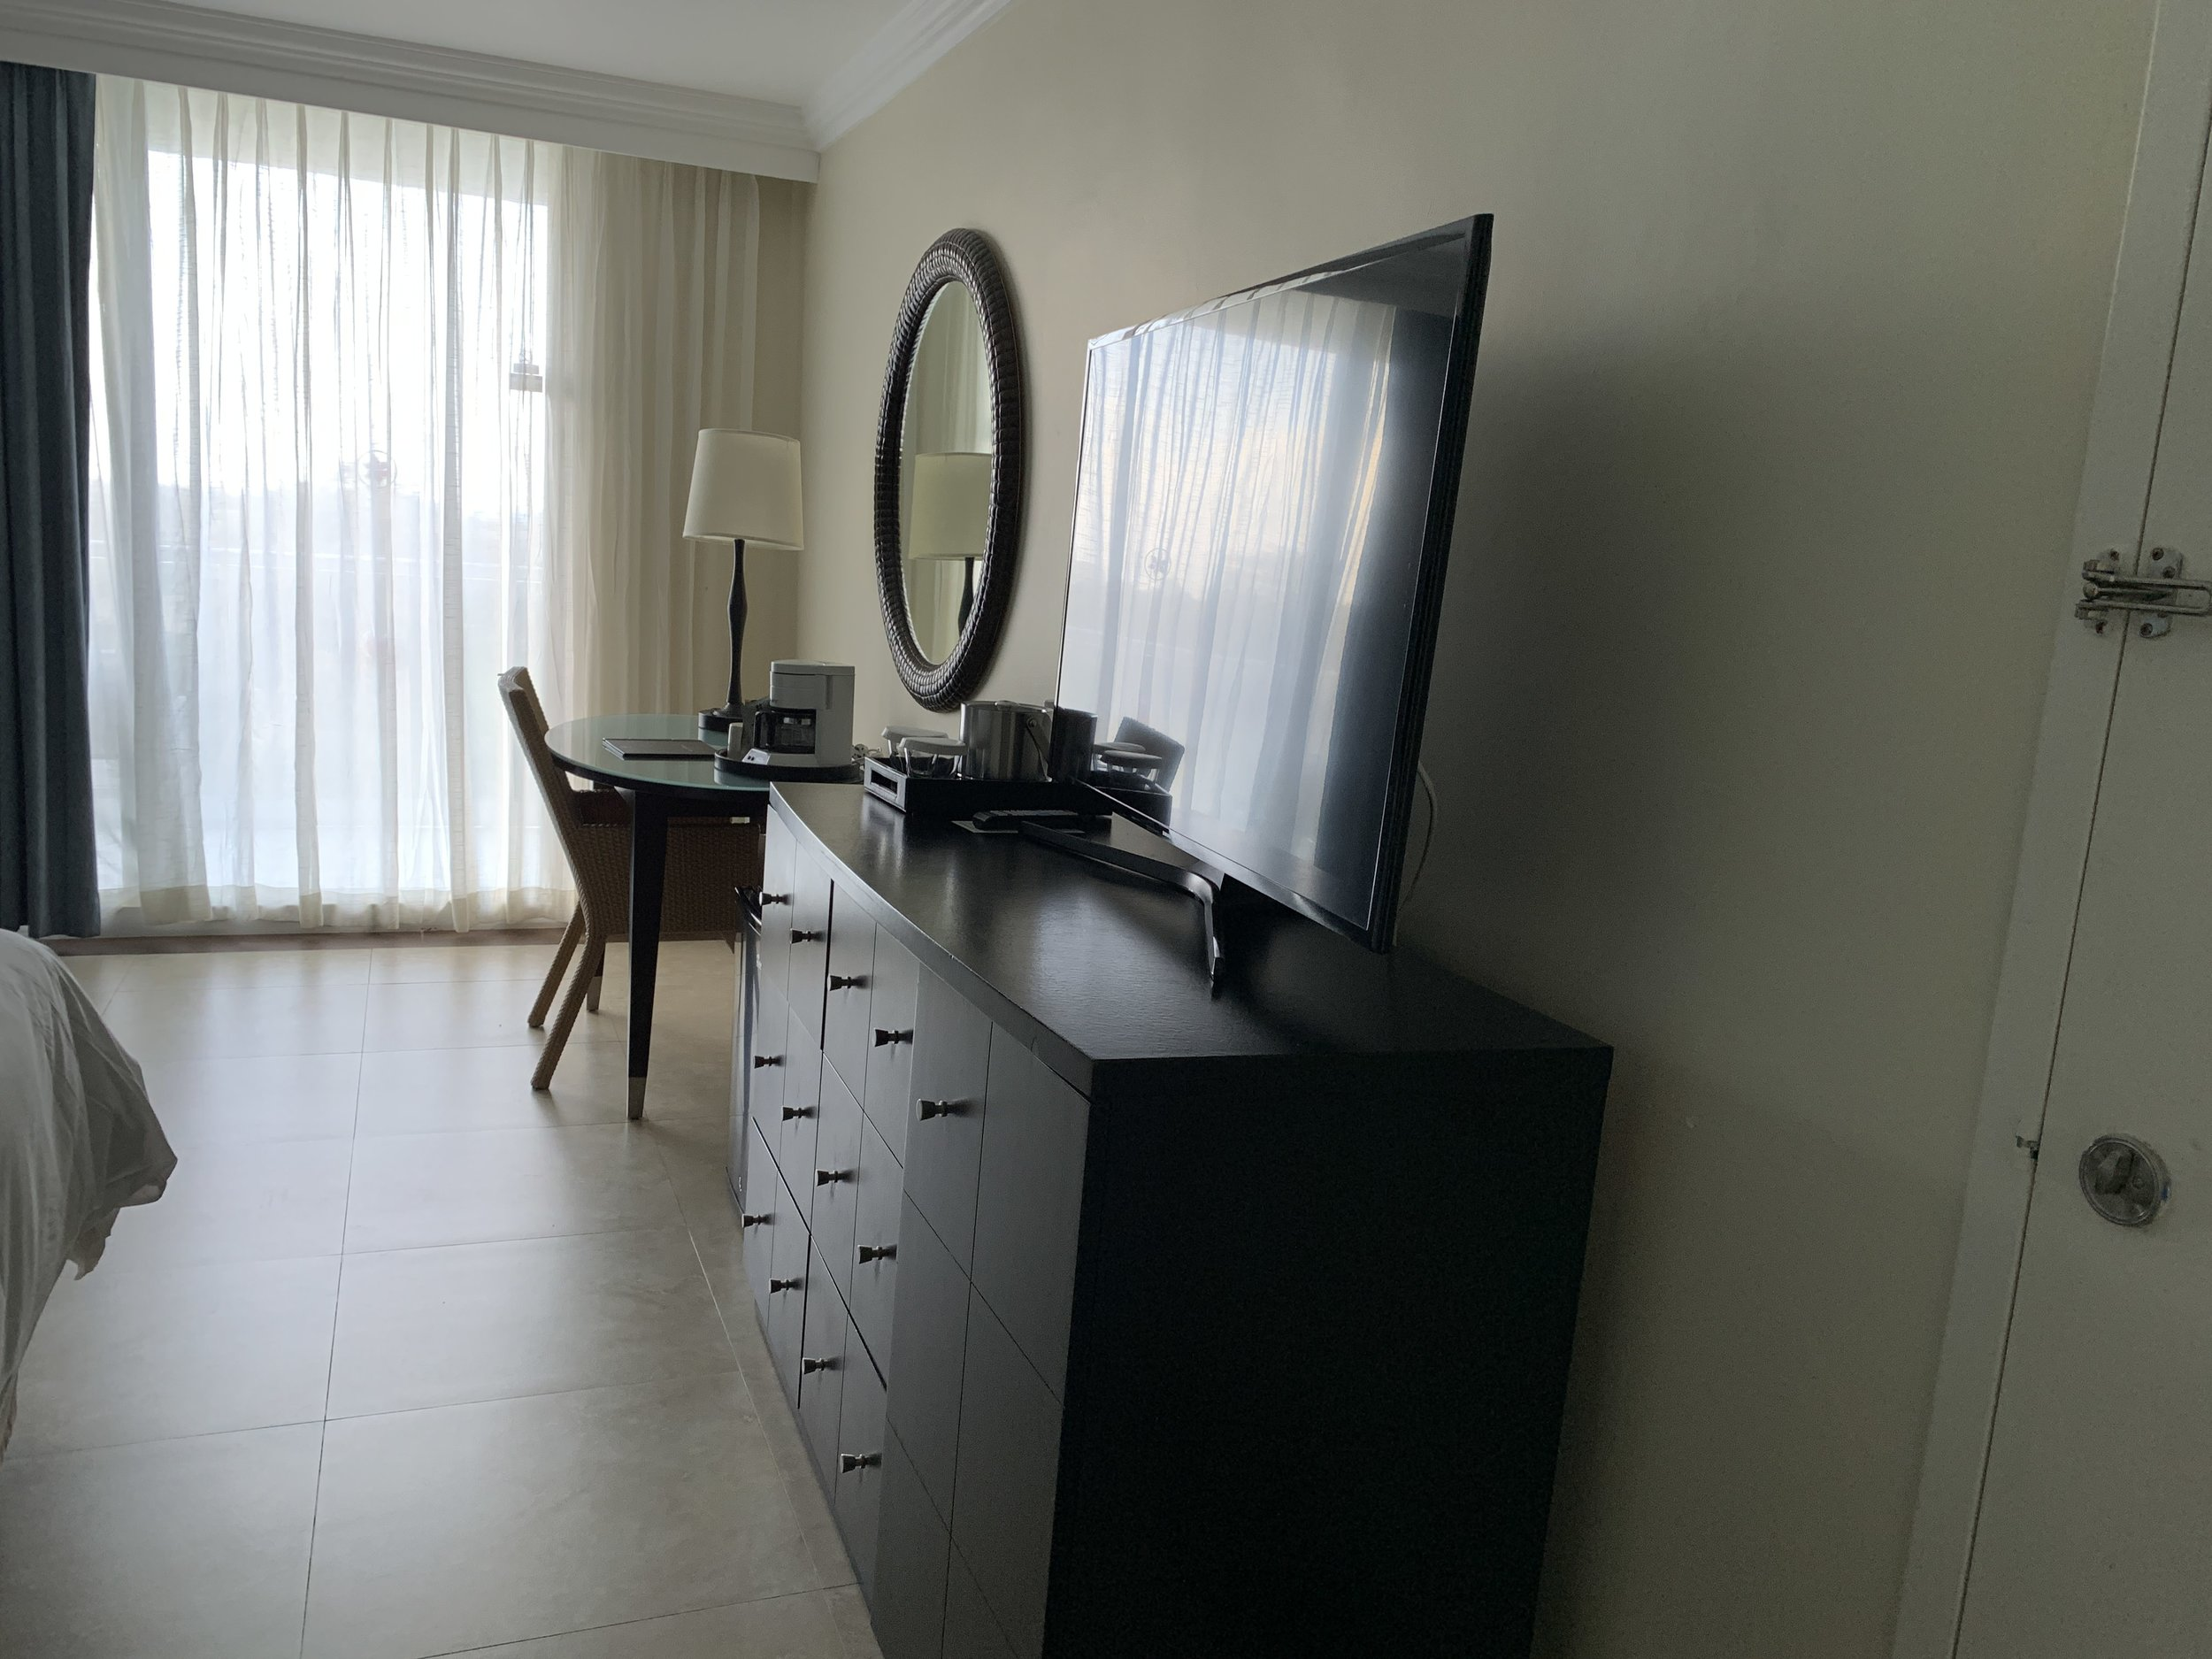 Connecting room with smart TV (Netflix capabilities), dresser drawers, and desk with reading lamp.